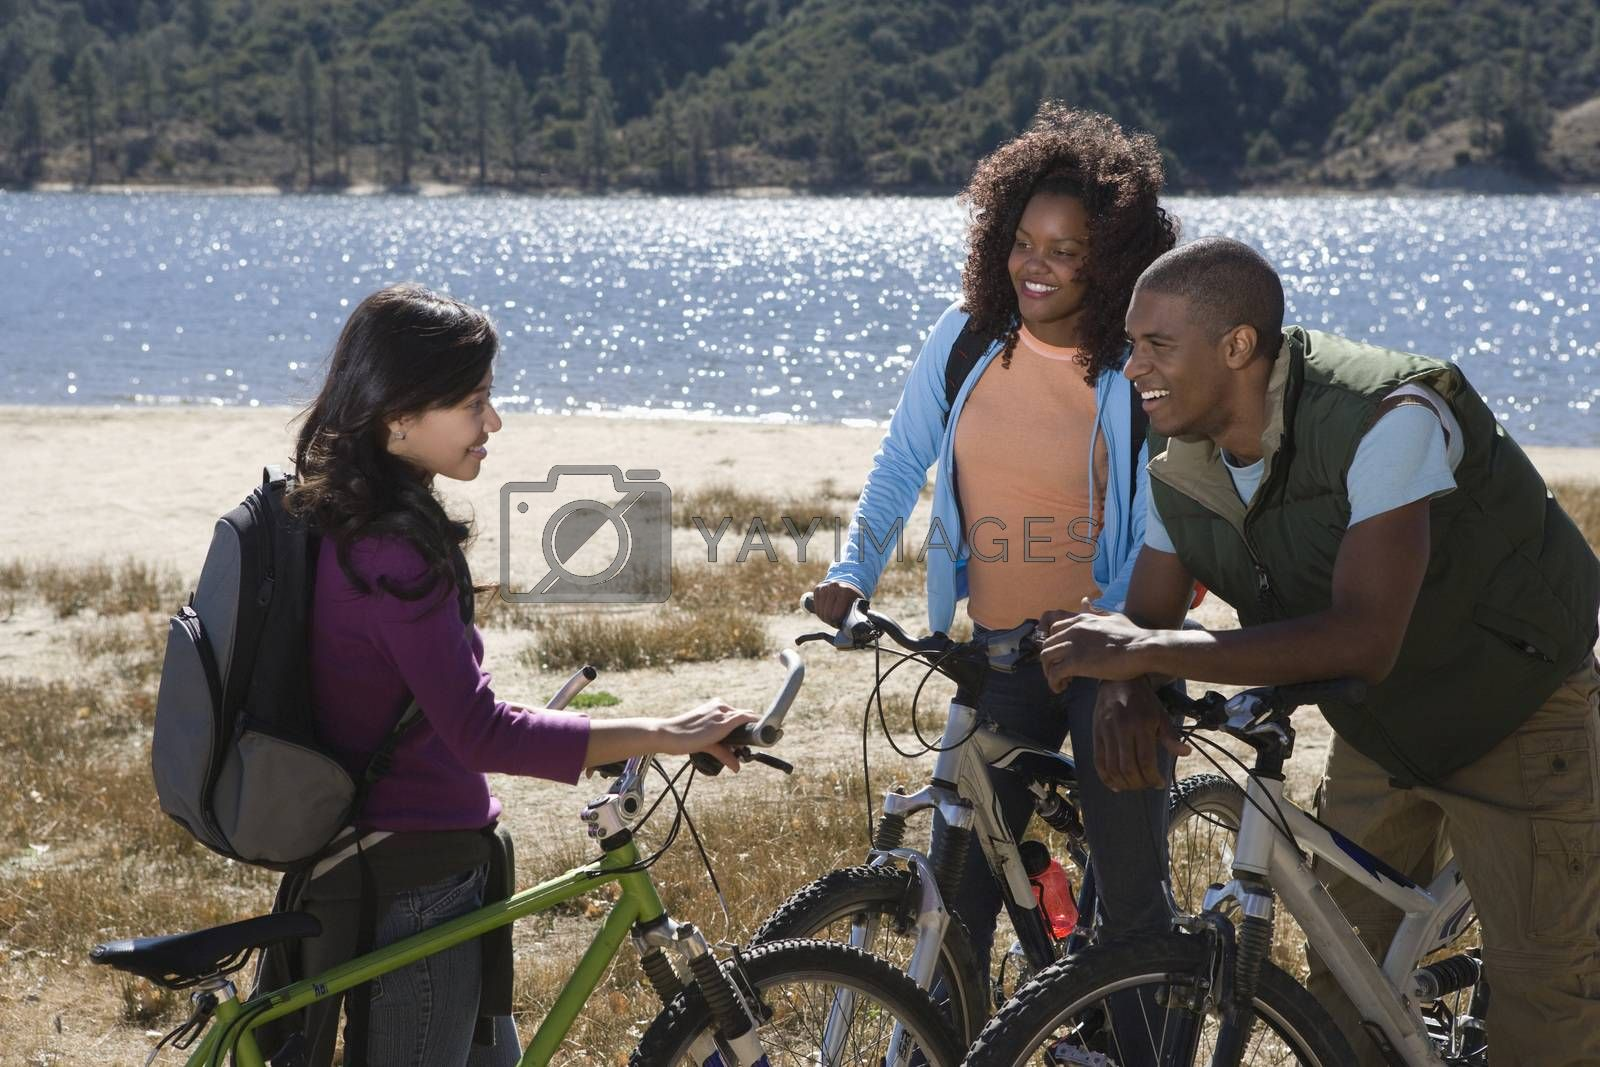 Friends With Mountain Bikes By The Lake